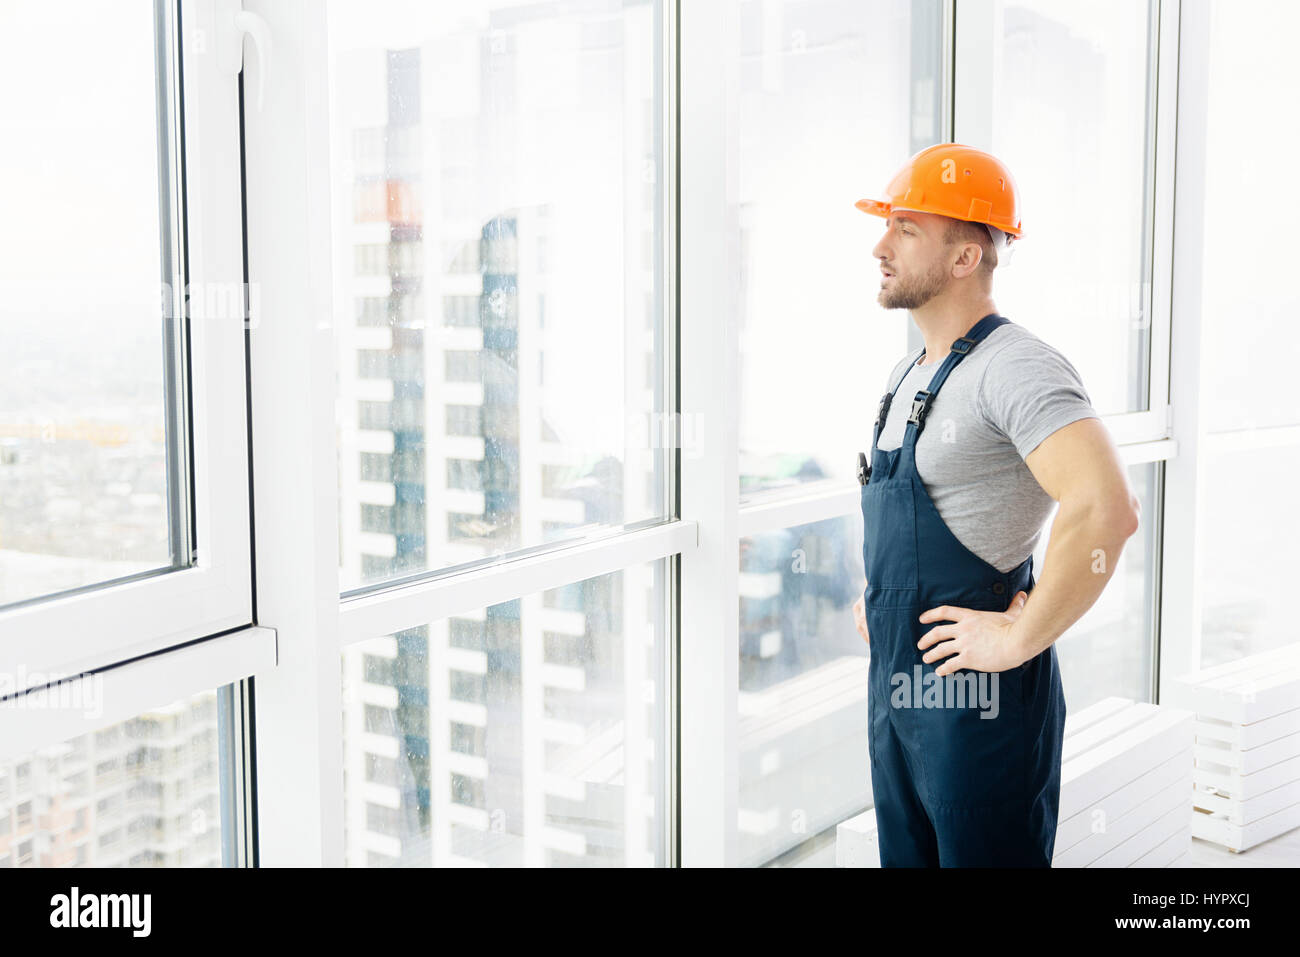 Serious construction engineer standing near window - Stock Image